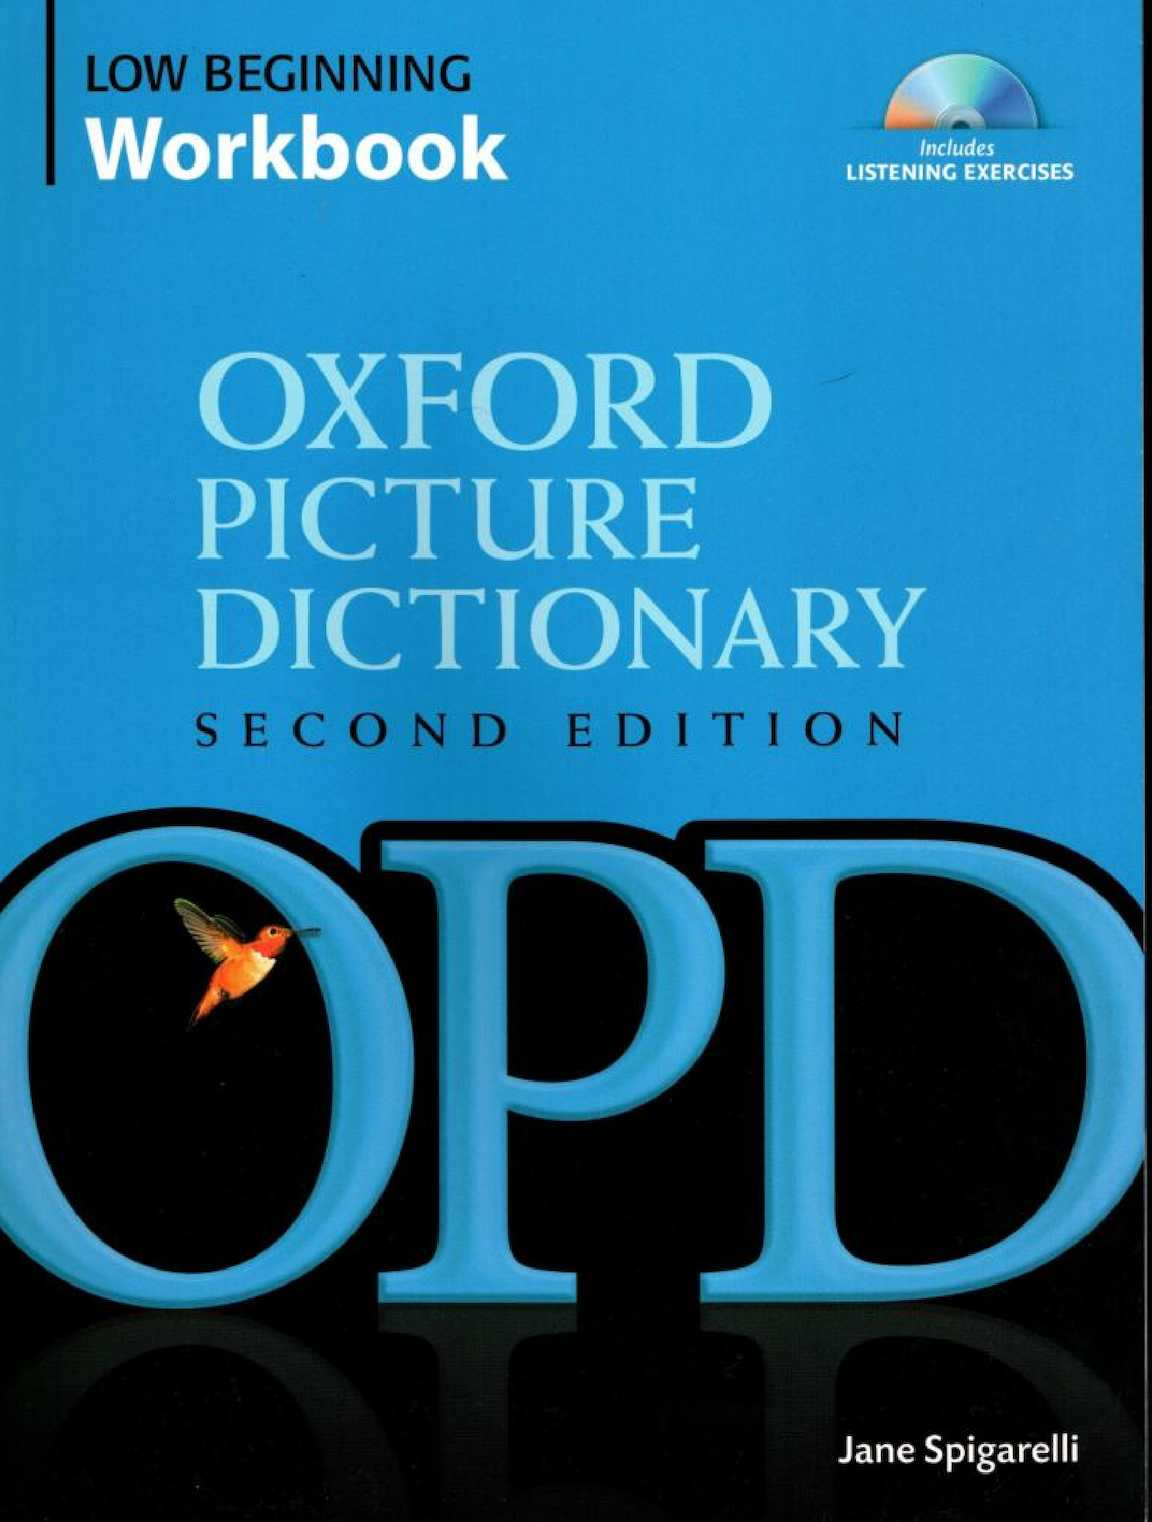 Oxford Picture Dictionary Low Beginning Workbook Vocabulary Pdf